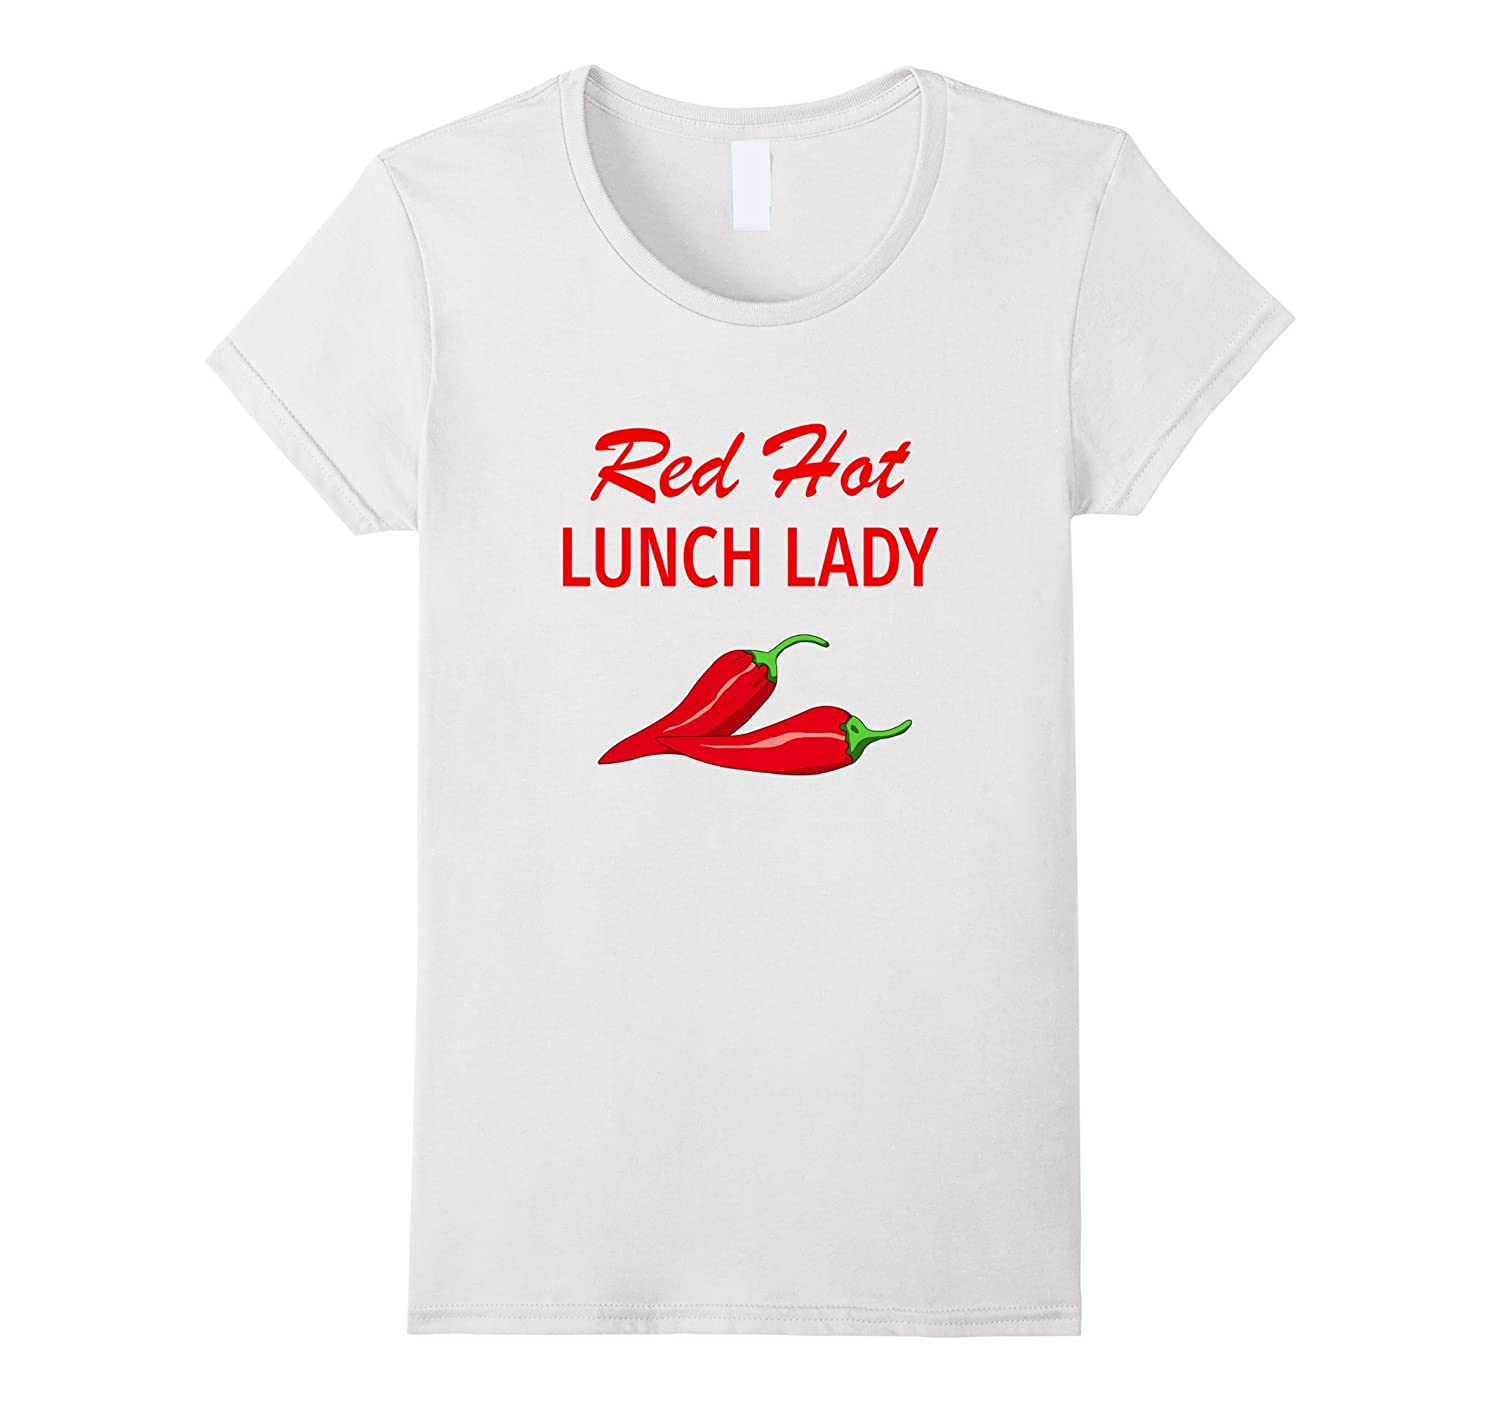 Funny Cafeteria Lady T Shirt Gift Red Hot Lunch Lady